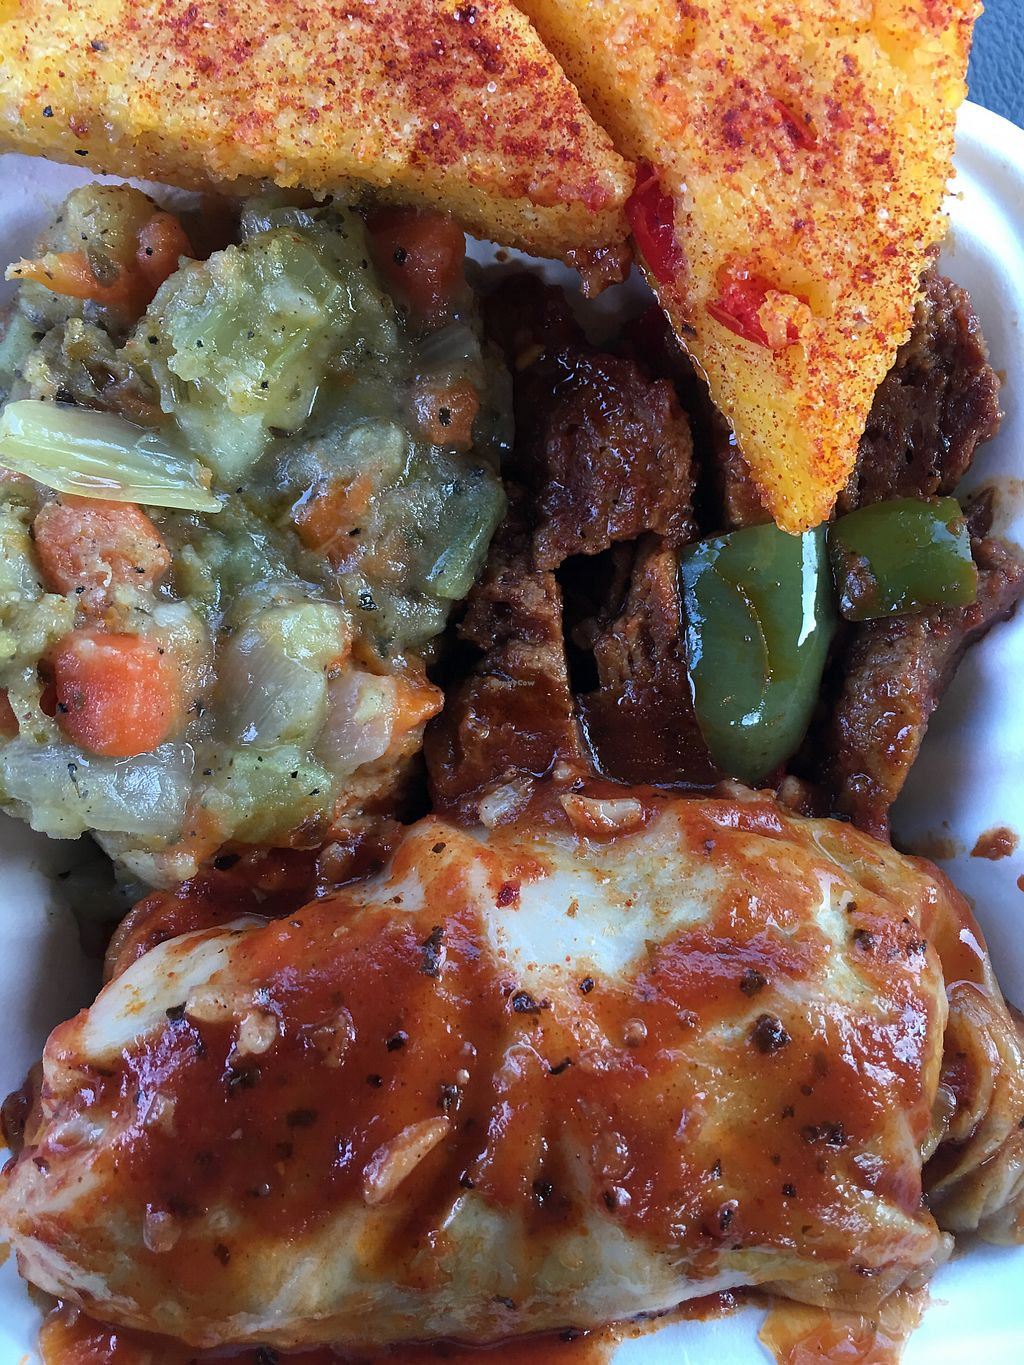 """Photo of Gaia's Garden  by <a href=""""/members/profile/americanwinter"""">americanwinter</a> <br/>Polenta, vegetable pot pie, seitan stir-fry, stuffed cabbage <br/> April 21, 2018  - <a href='/contact/abuse/image/5331/388923'>Report</a>"""